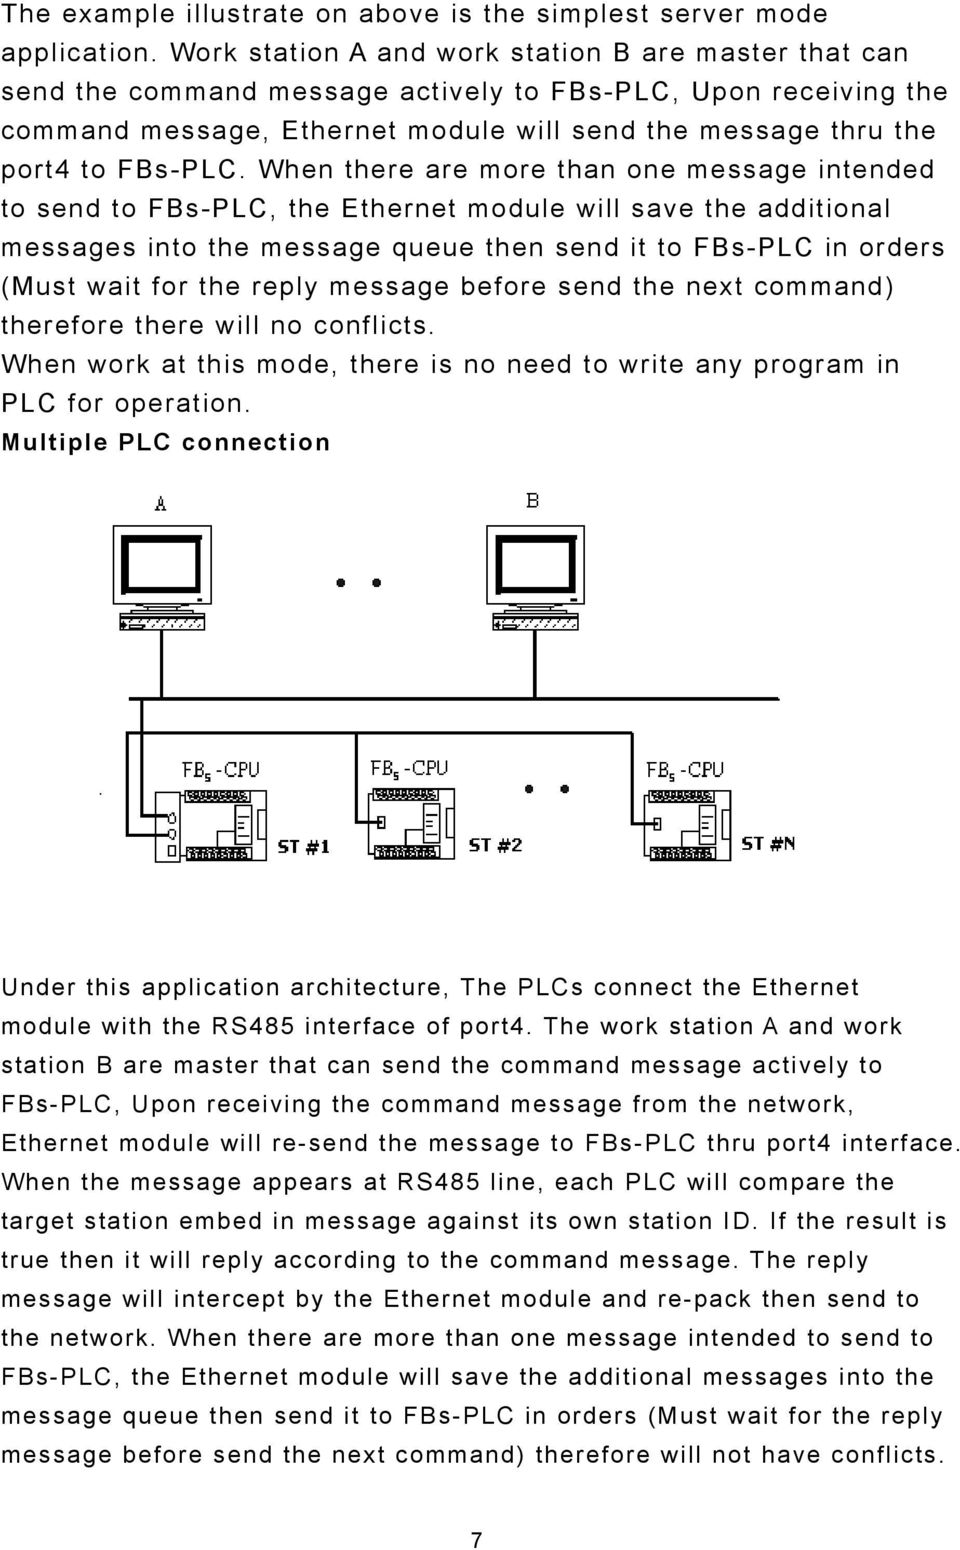 When there are more than one message intended to send to FBs-PLC, the Ethernet module will save the additional messages into the message queue then send it to FBs-PLC in orders (Must wait for the